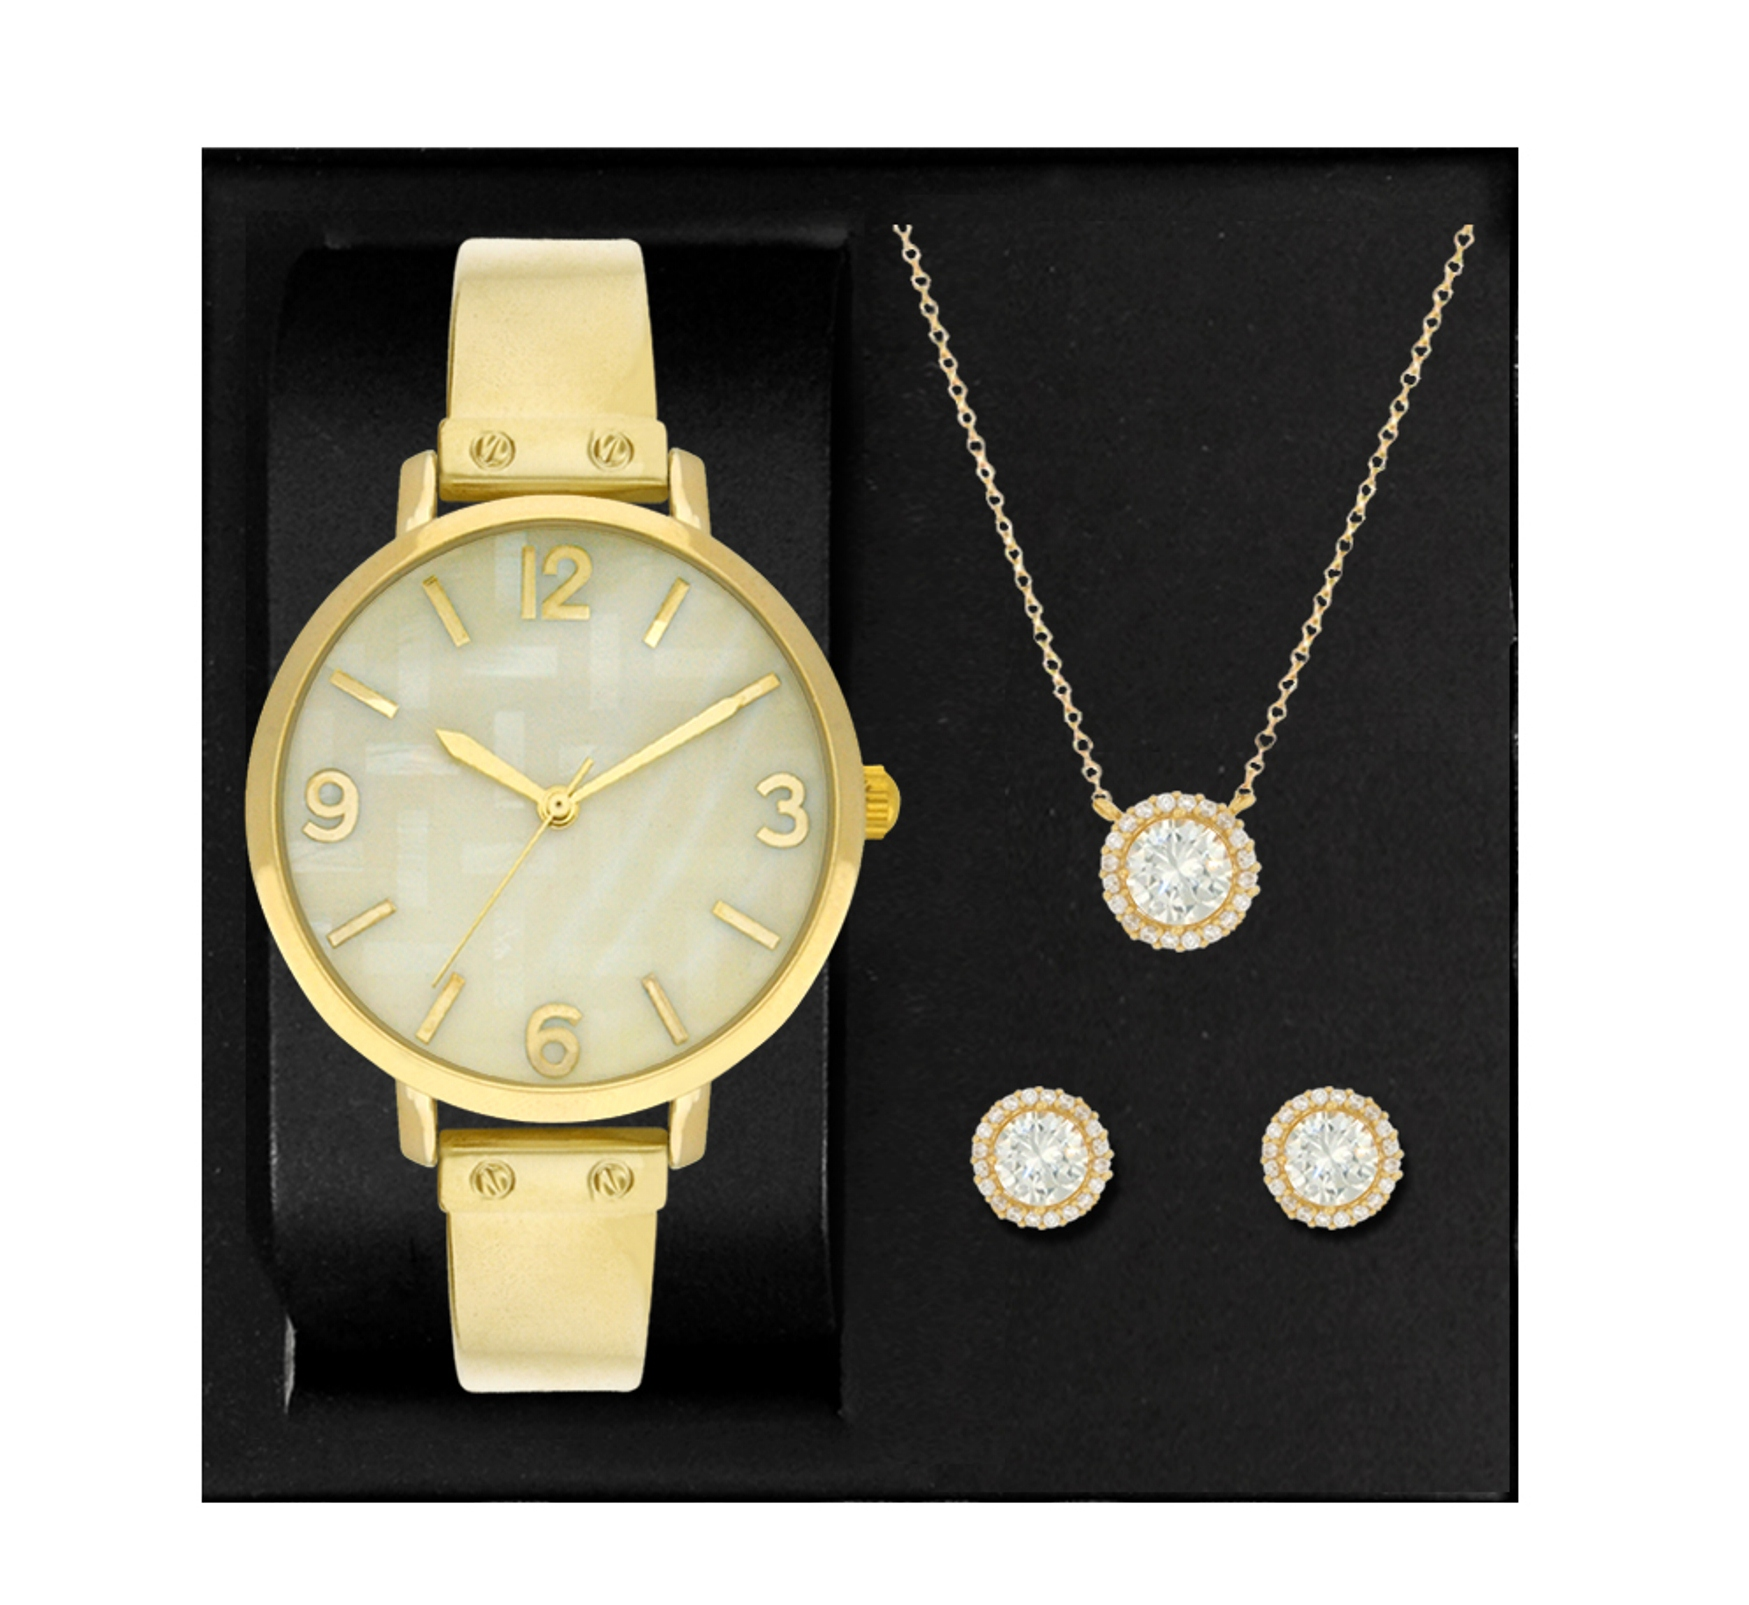 3 pc. Women's Gold-Tone Watch and Jewelry Set